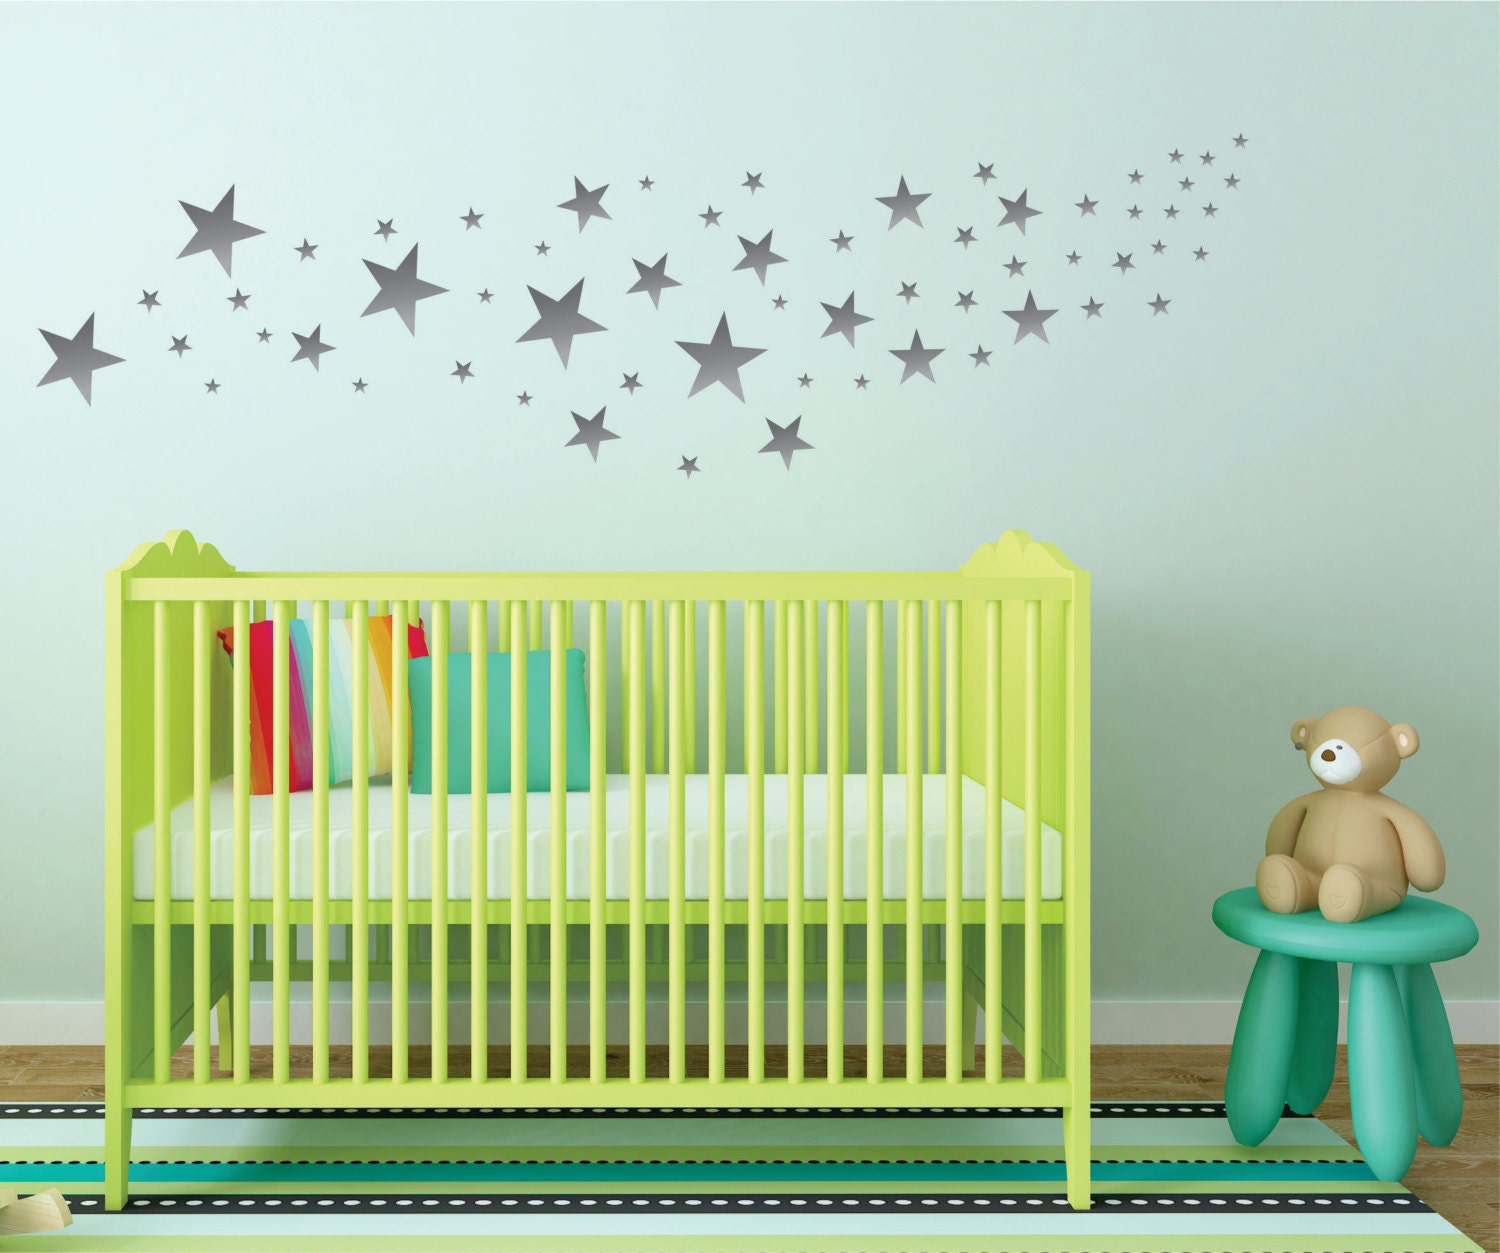 silver star wall decals nursery wall decals design pack of 109 silver star wall decals nursery wall decals design pack of 109 stars